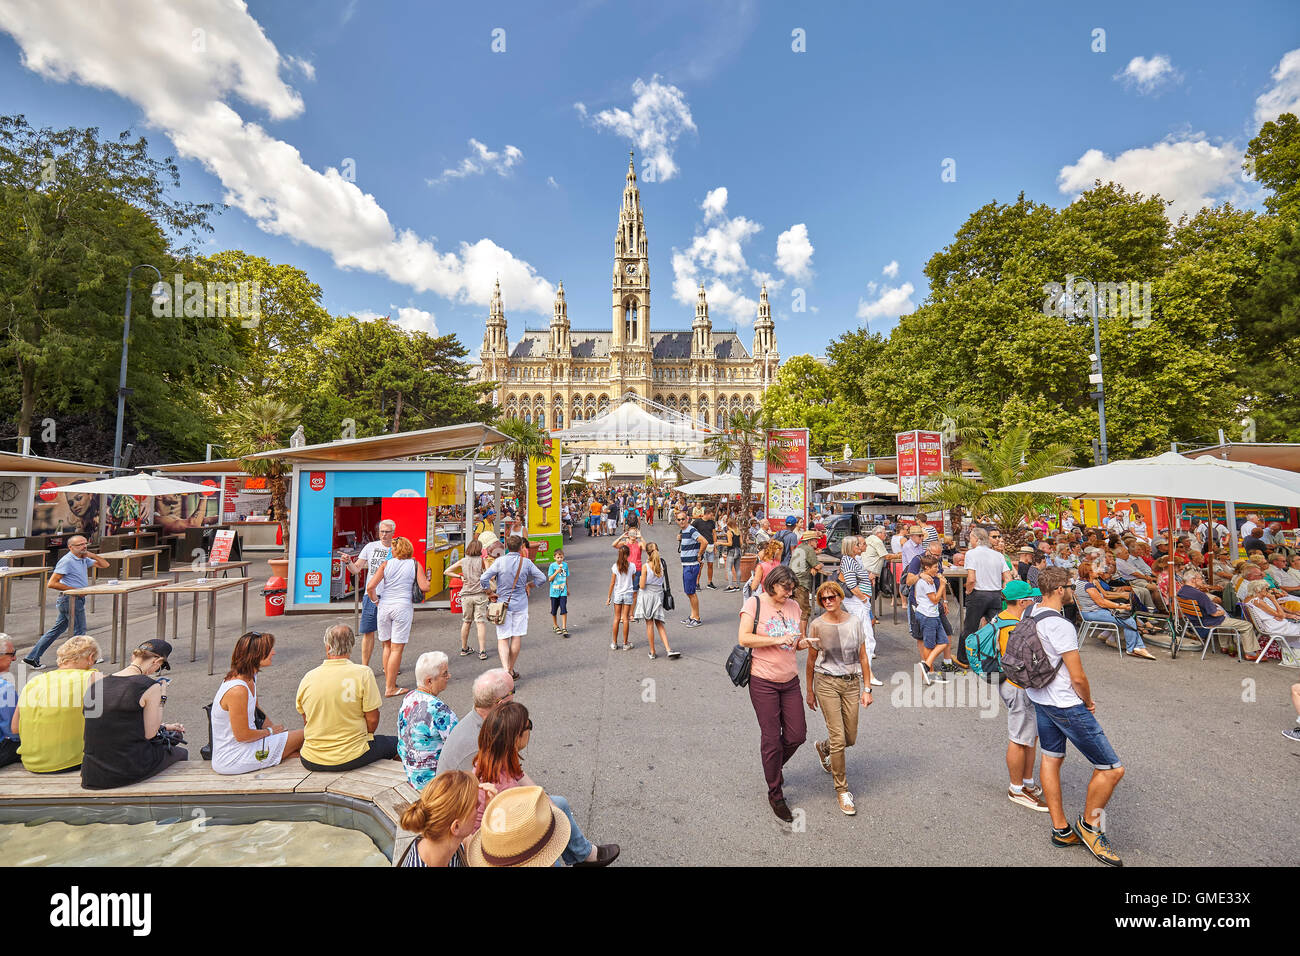 People at the 26th Vienna Film Festival at Rathausplatz. - Stock Image